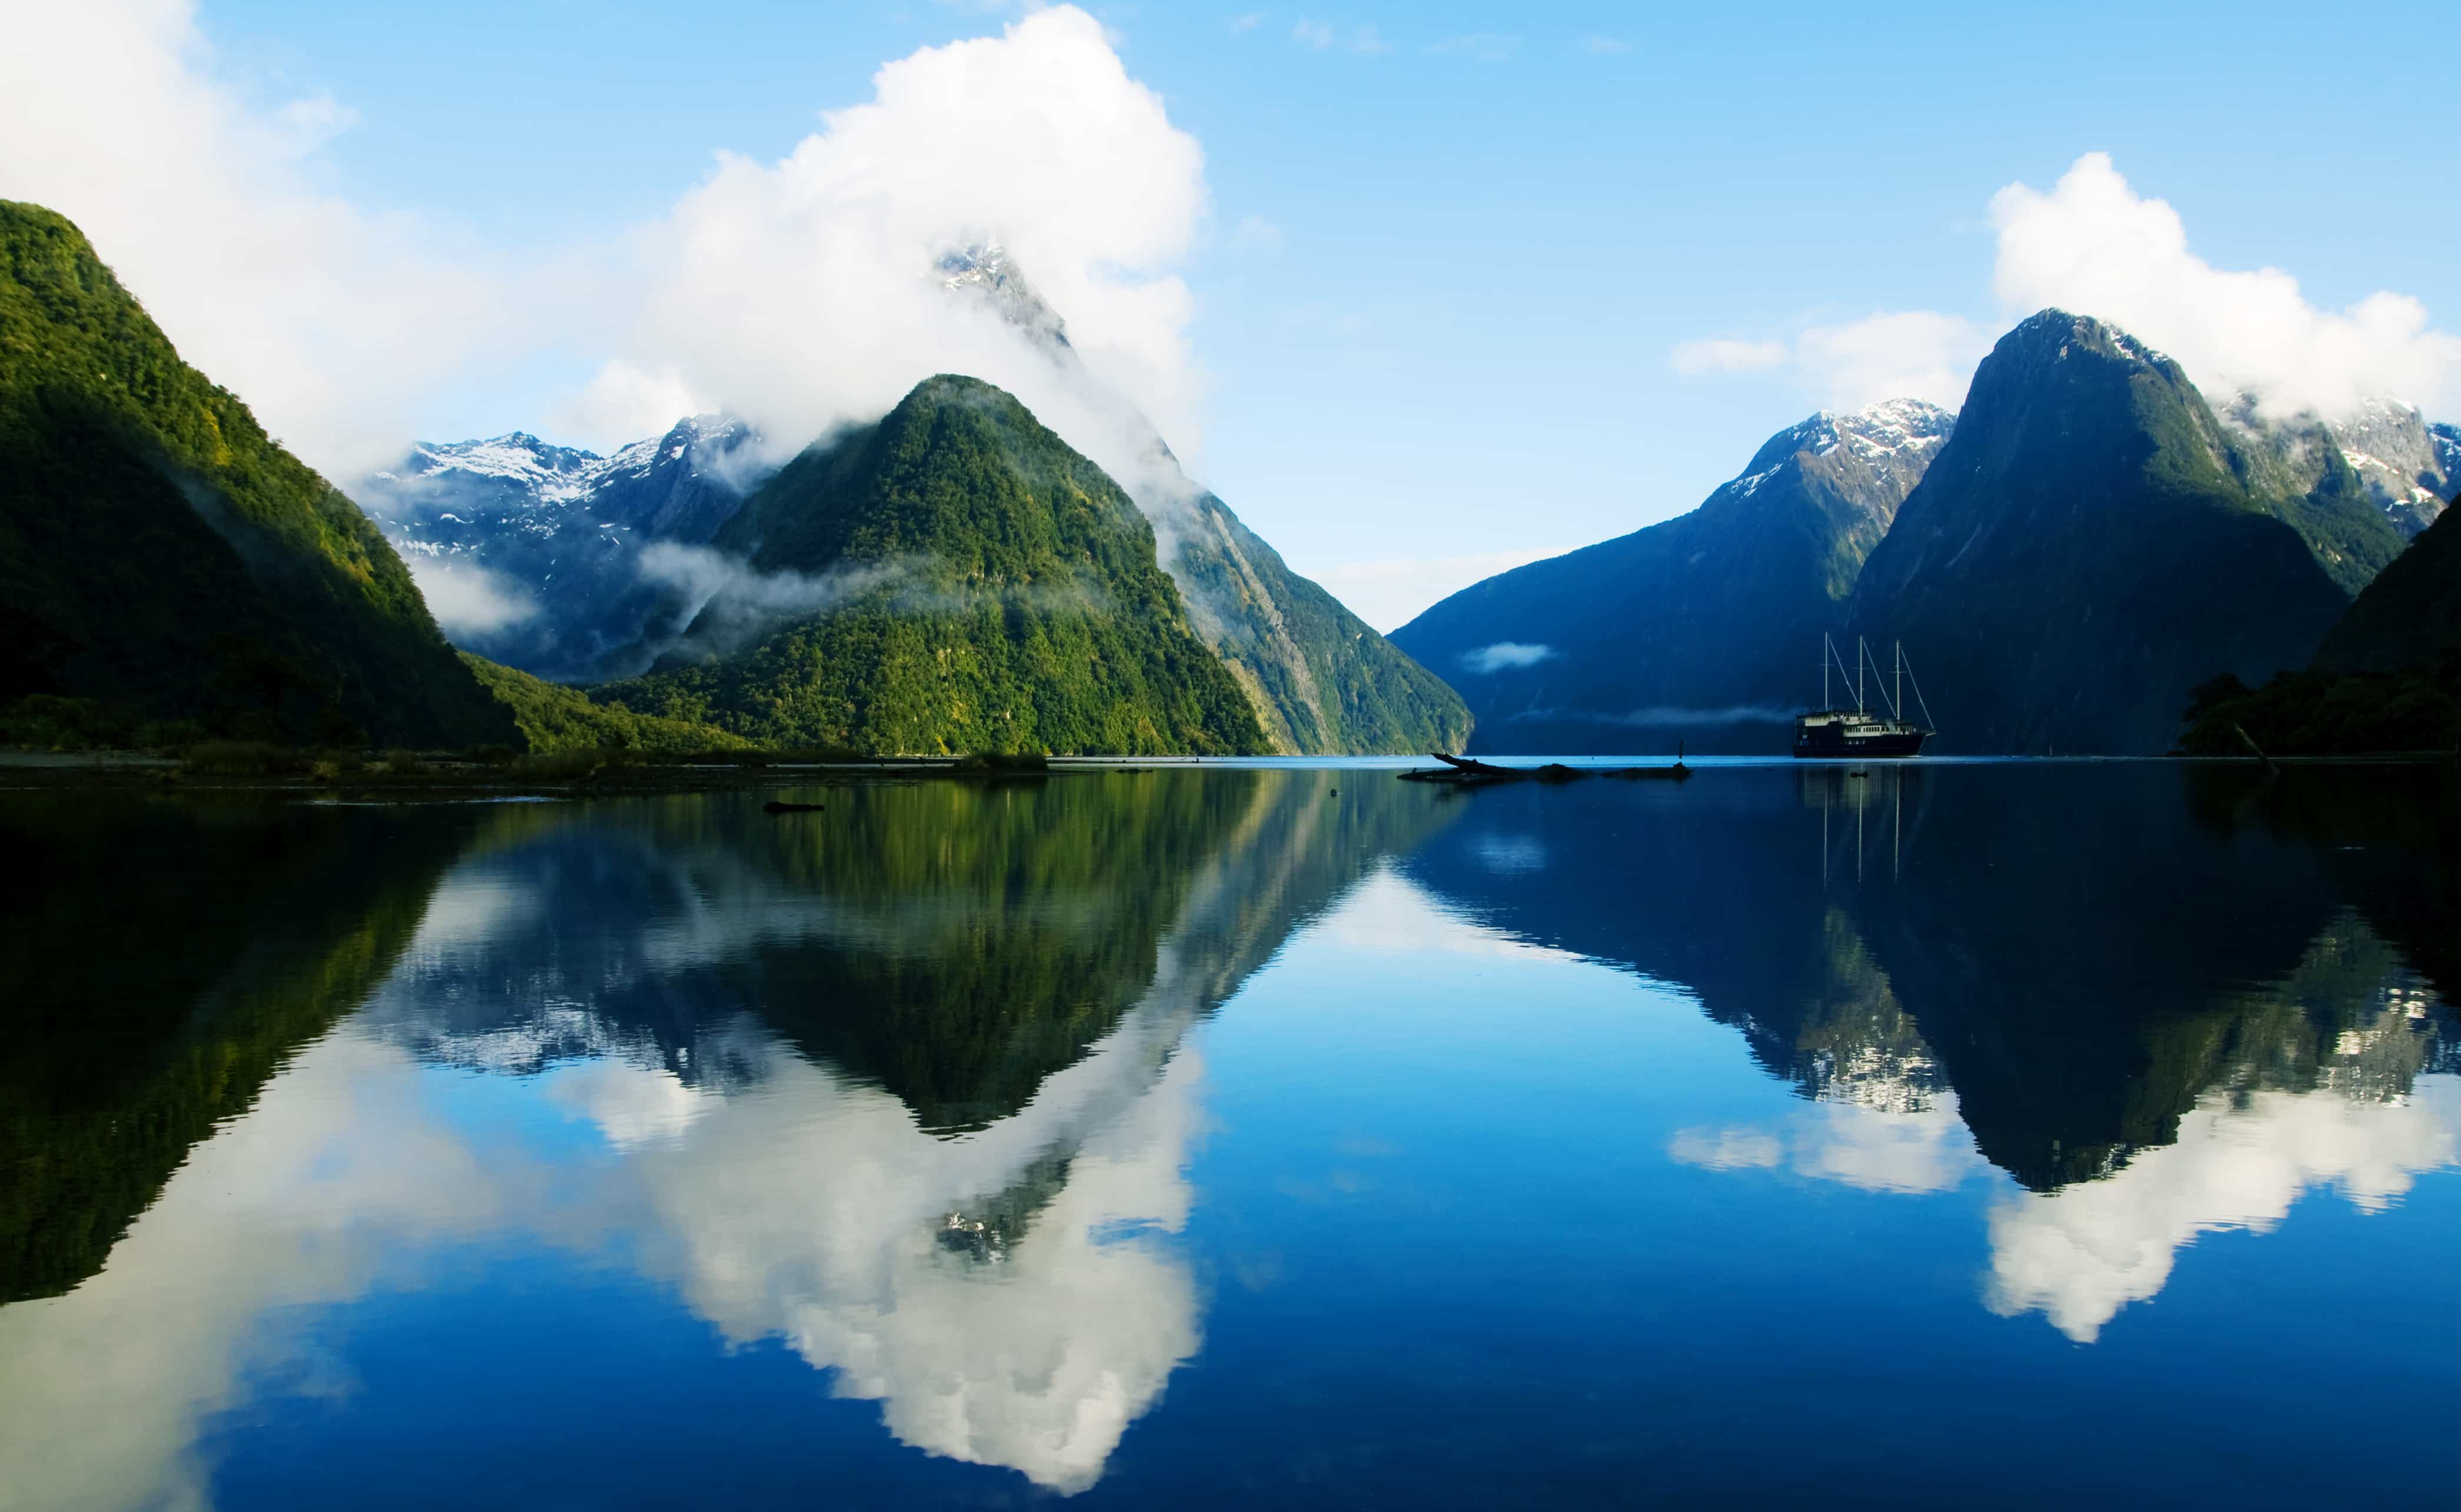 Emerald mountains rising from the glassy waters of New Zealand, a site to behold on your New Zealnd yacht charter